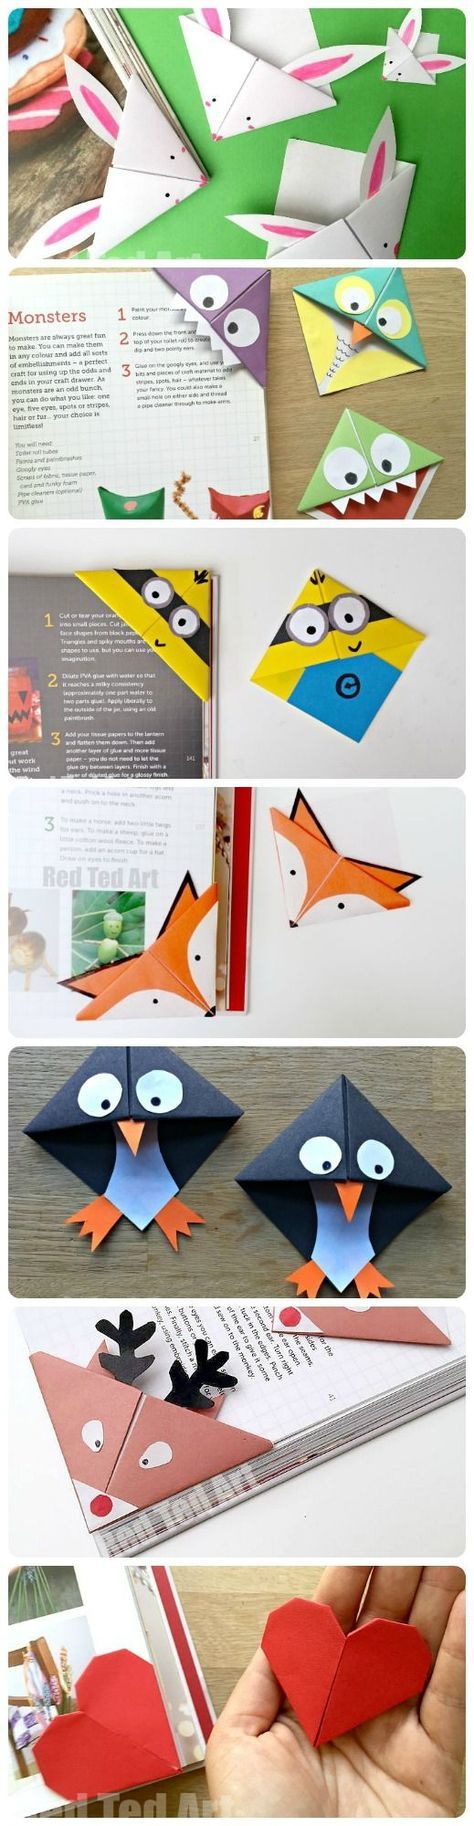 We adore making Bookmarks and these corner bookmarks are GREAT fun to make and give. So many different designs for all seasons - with more to come (check back regularly!!!!). From Bunny Bookmarks for Easter, to Minion Bookmarks for Minion fans. I adore the Monster version too. More